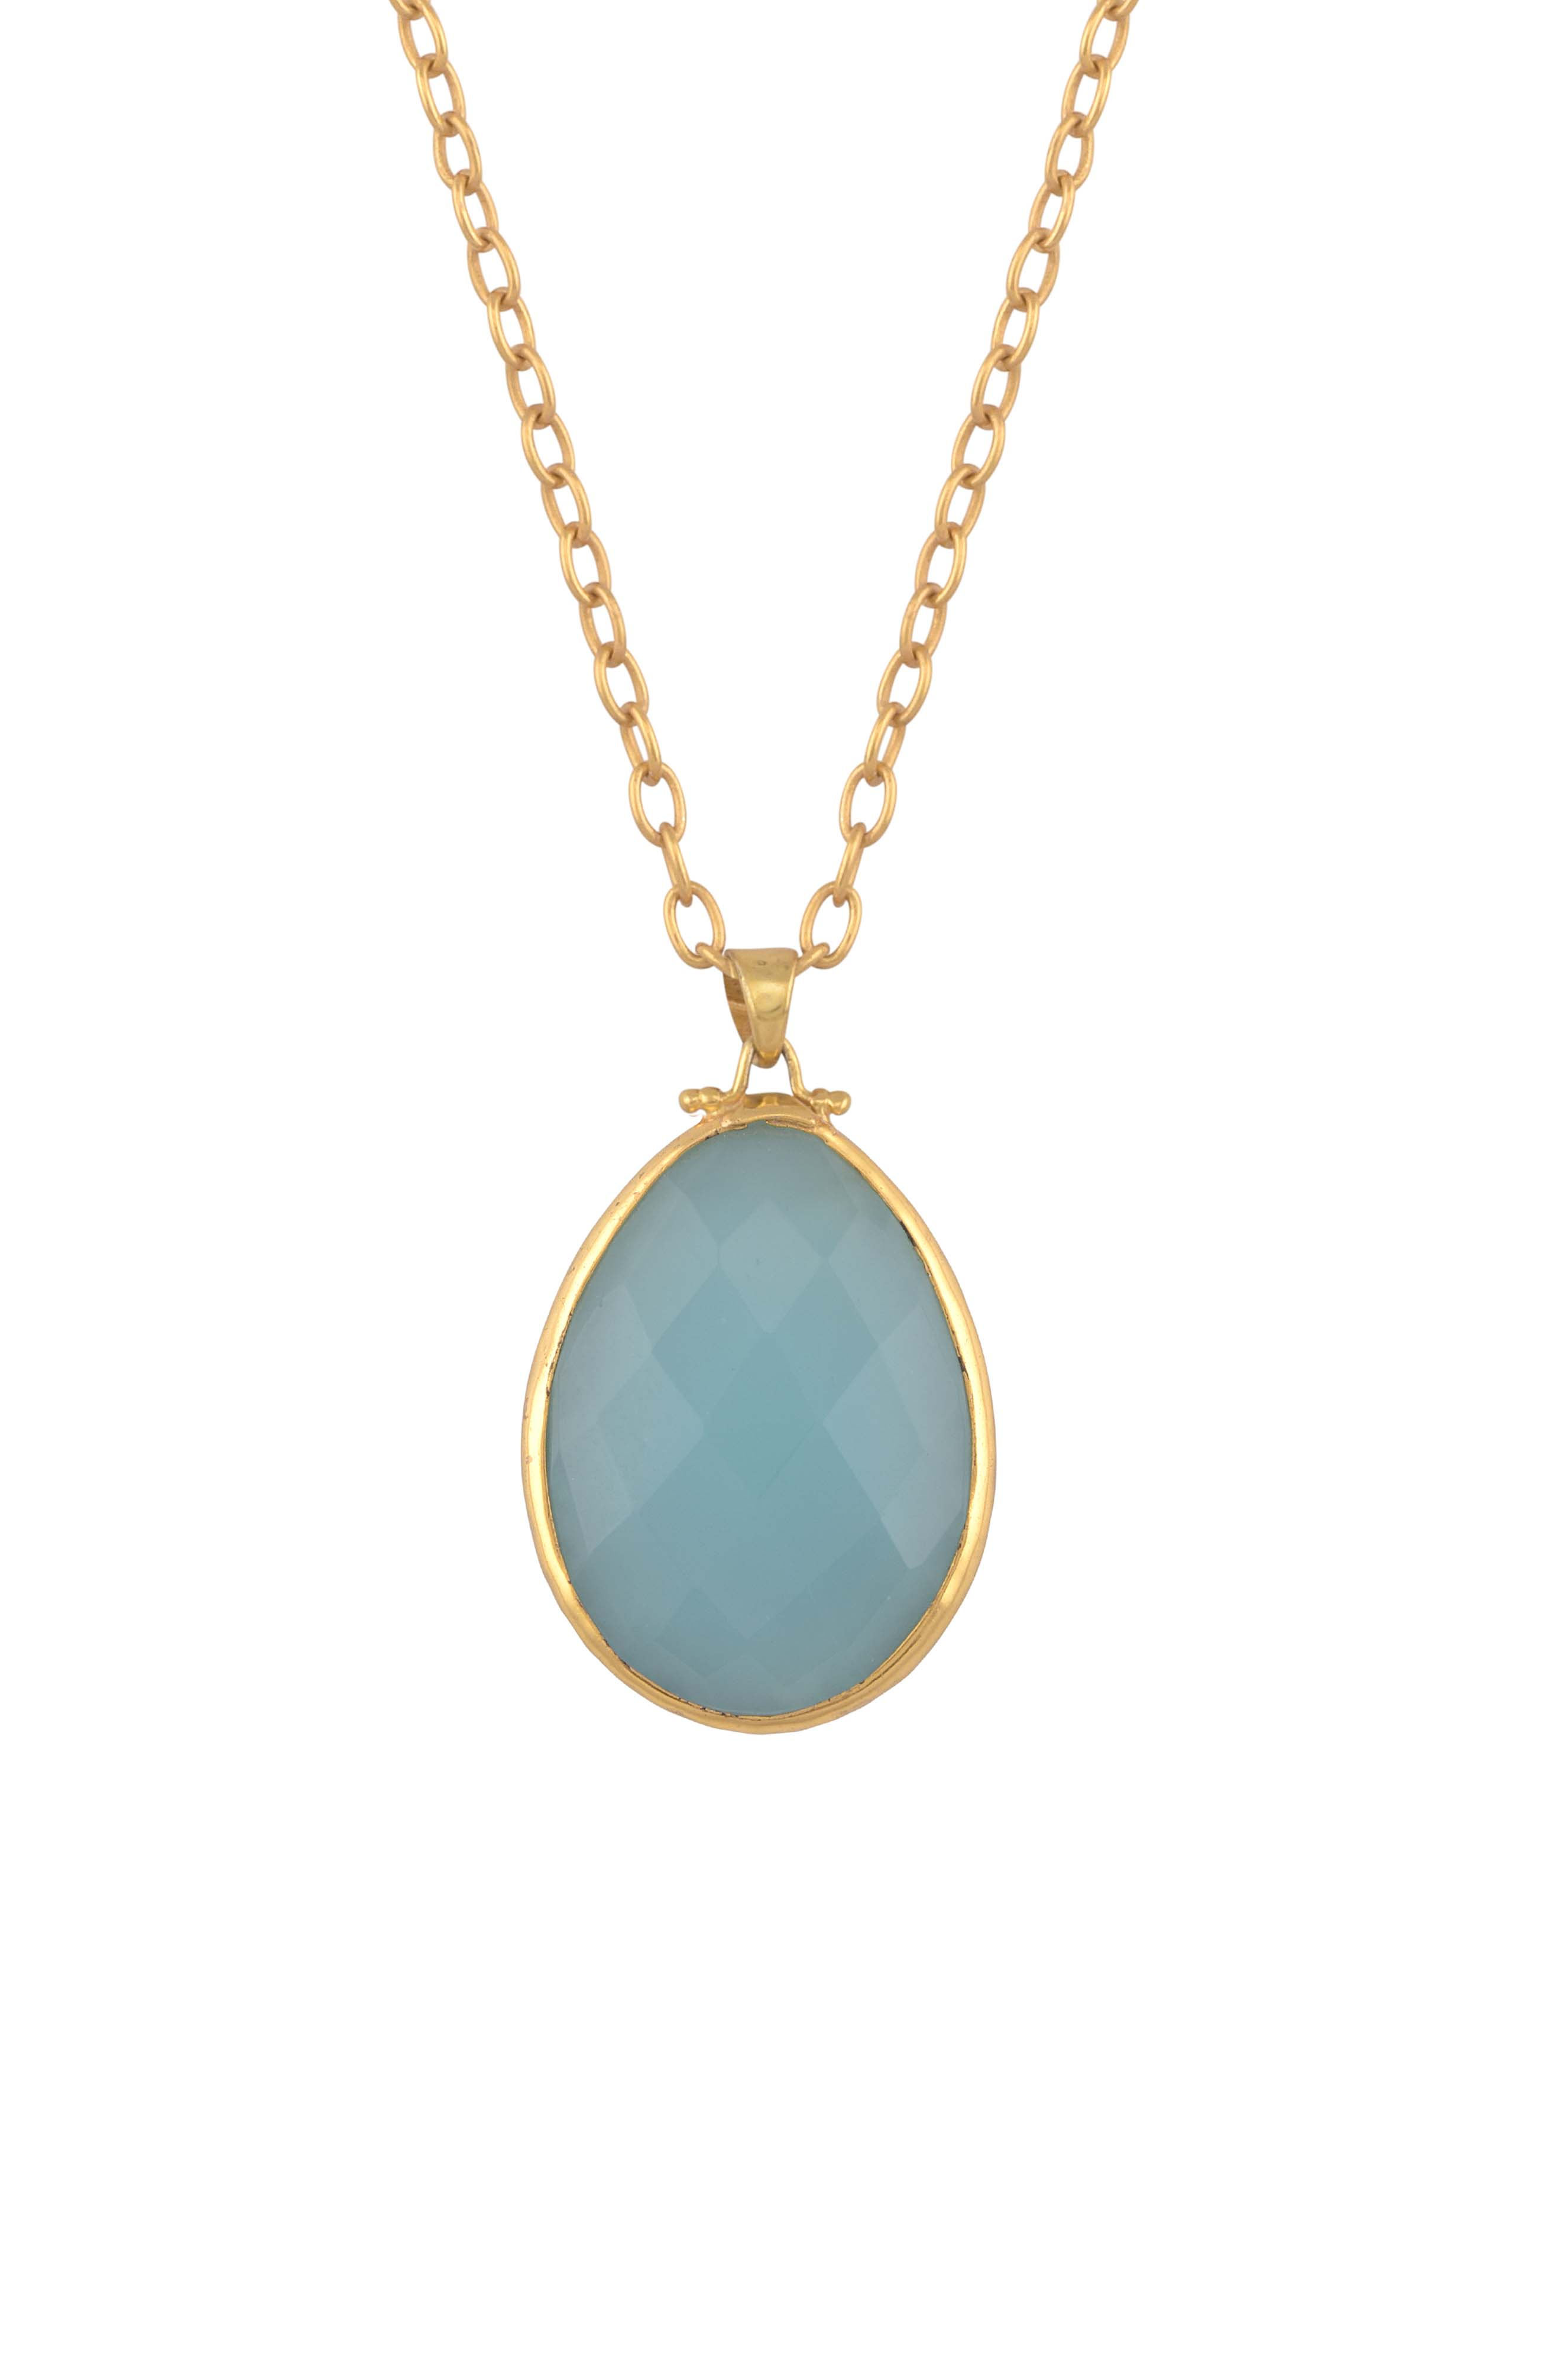 Gold Plated Labradorite Glass Pendant Necklace